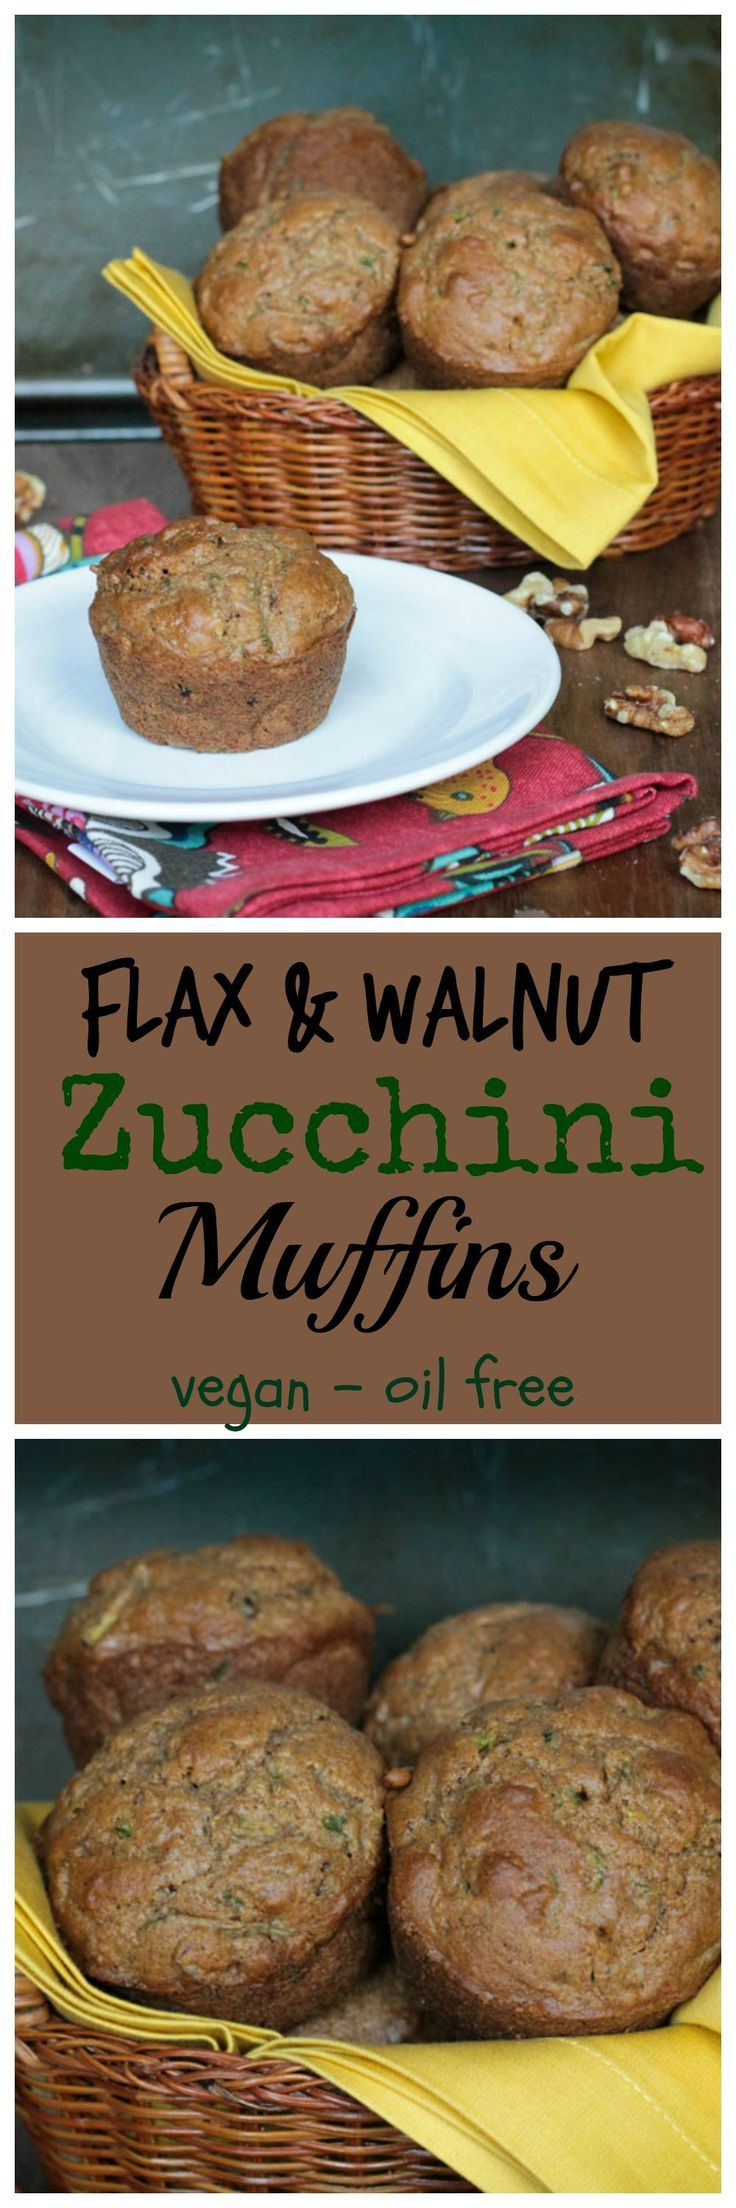 Flax & Walnut Zucchini Muffins - wholesome muffins, lightly sweetened, and perfect for a breakfast or a snack any time of day!